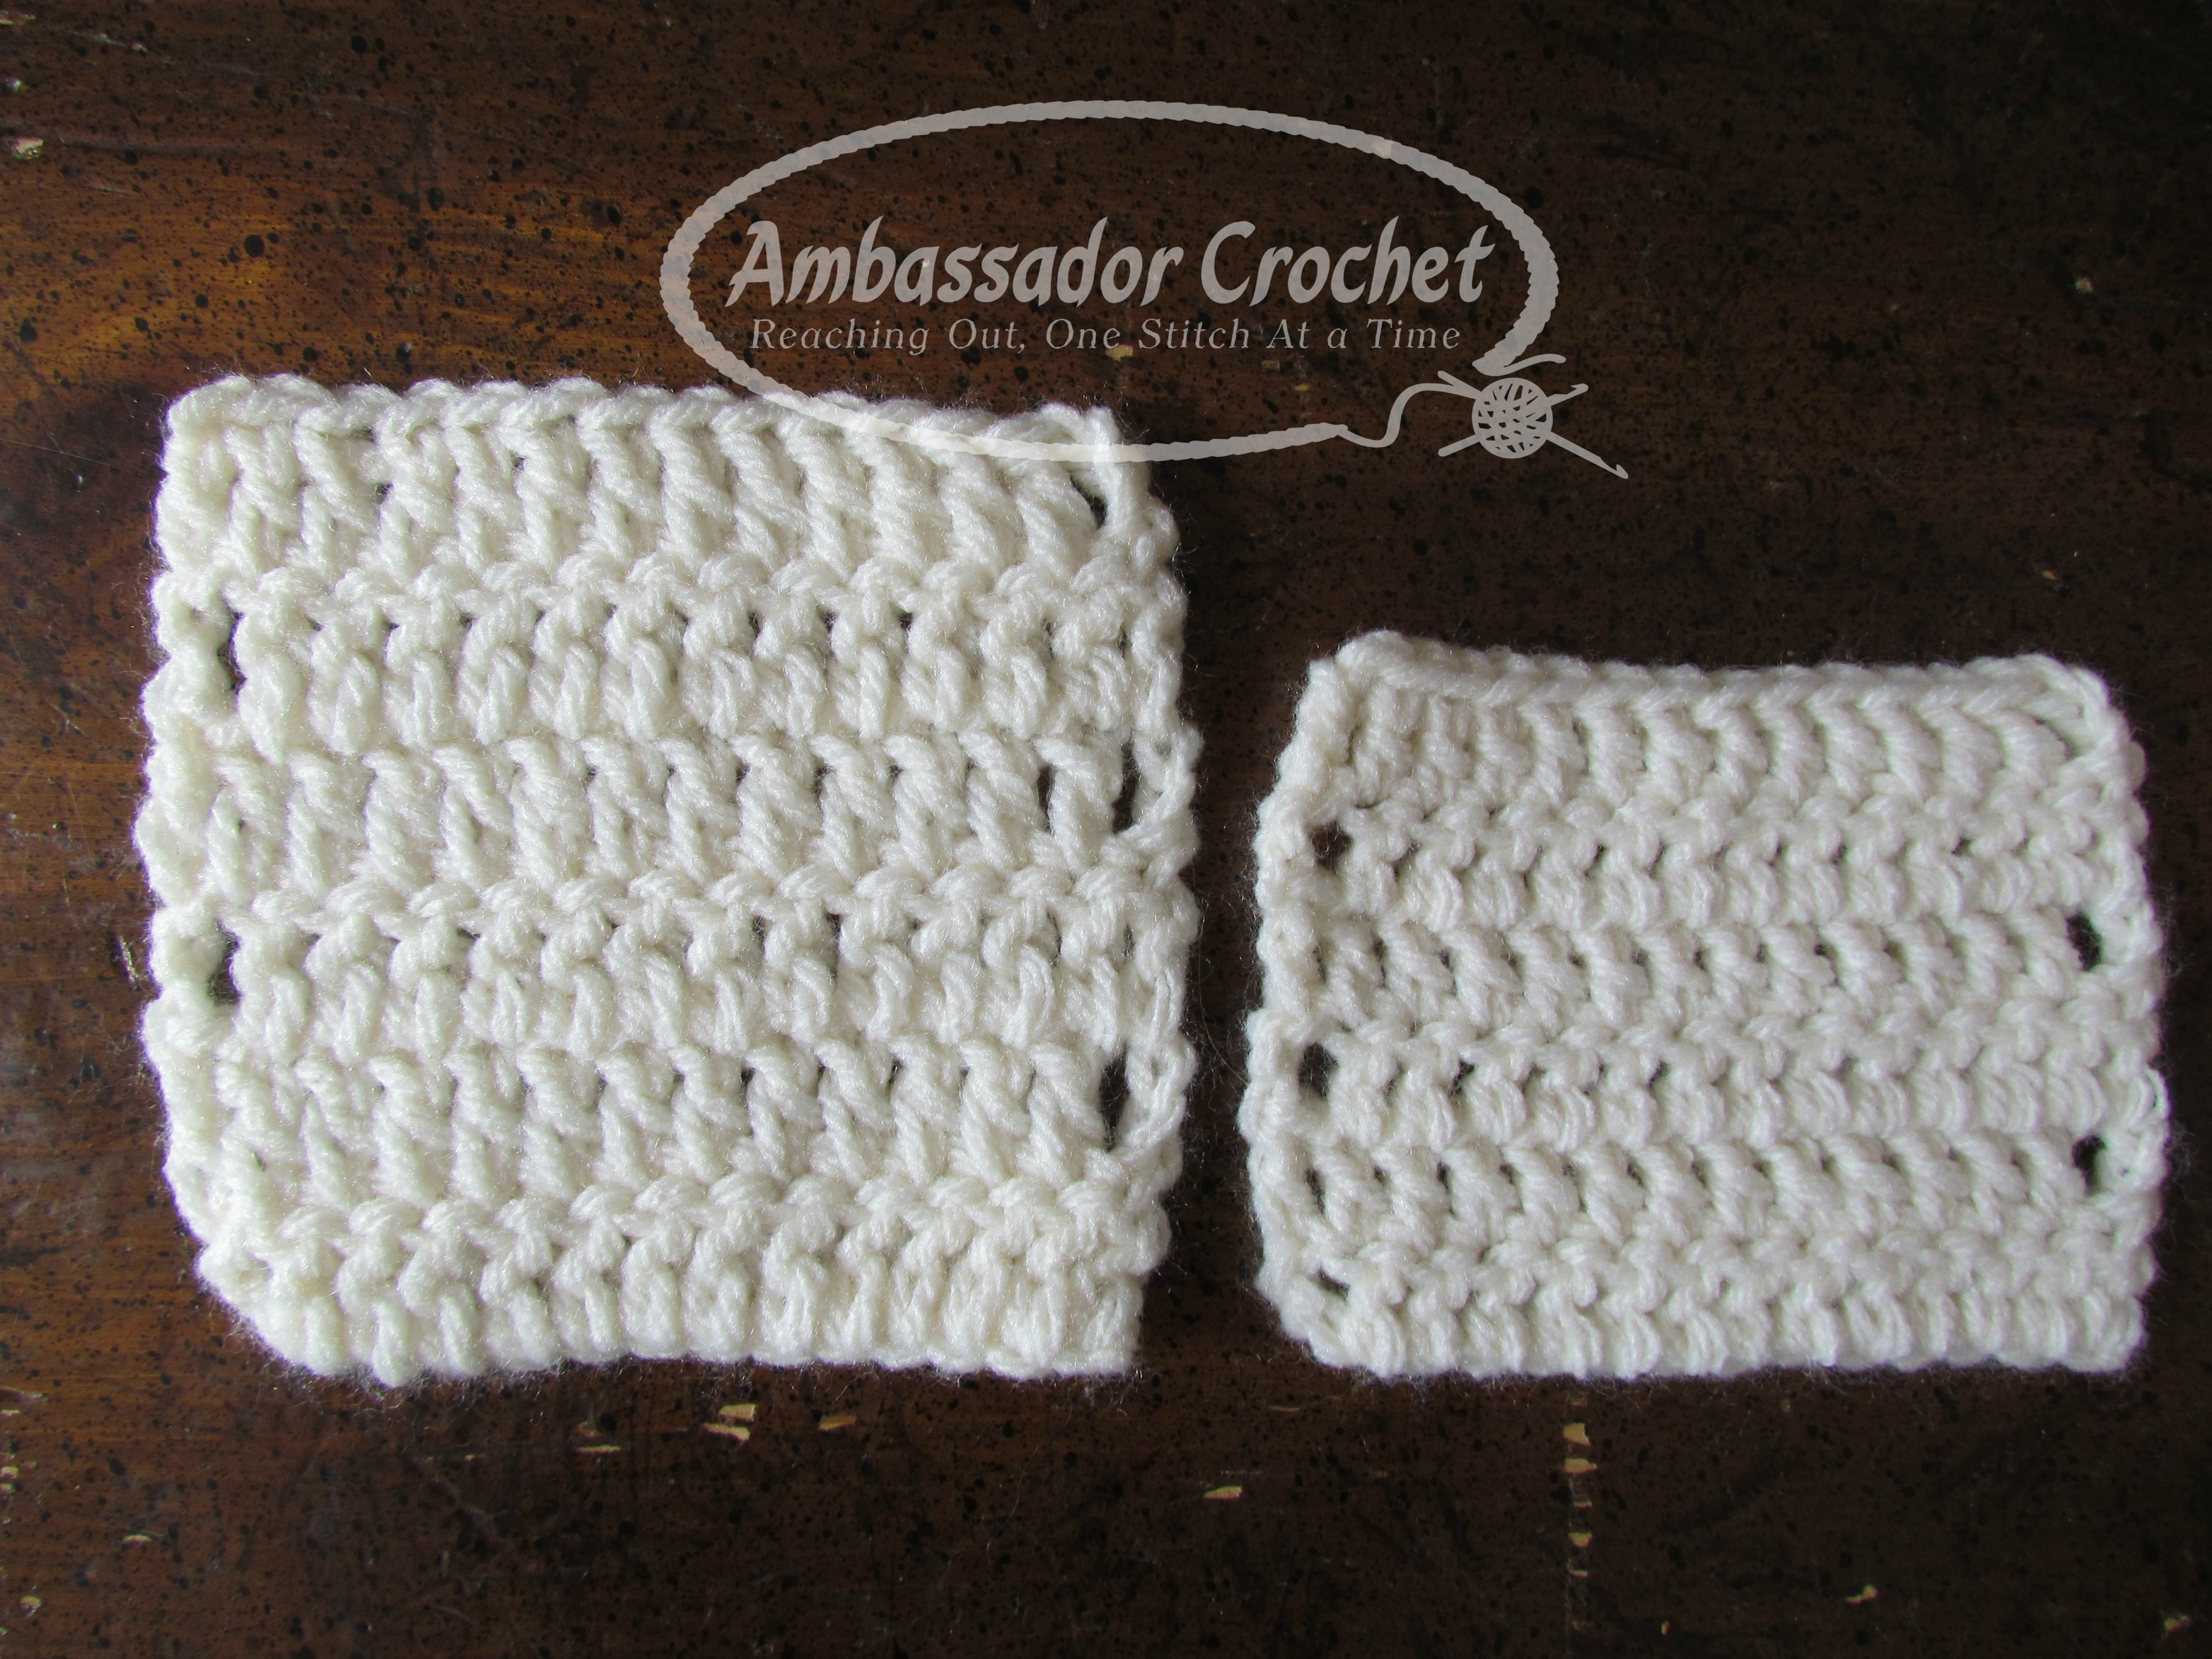 Crochet Gauge : Crochet Gauge Related Keywords & Suggestions - Crochet Gauge Long Tail ...